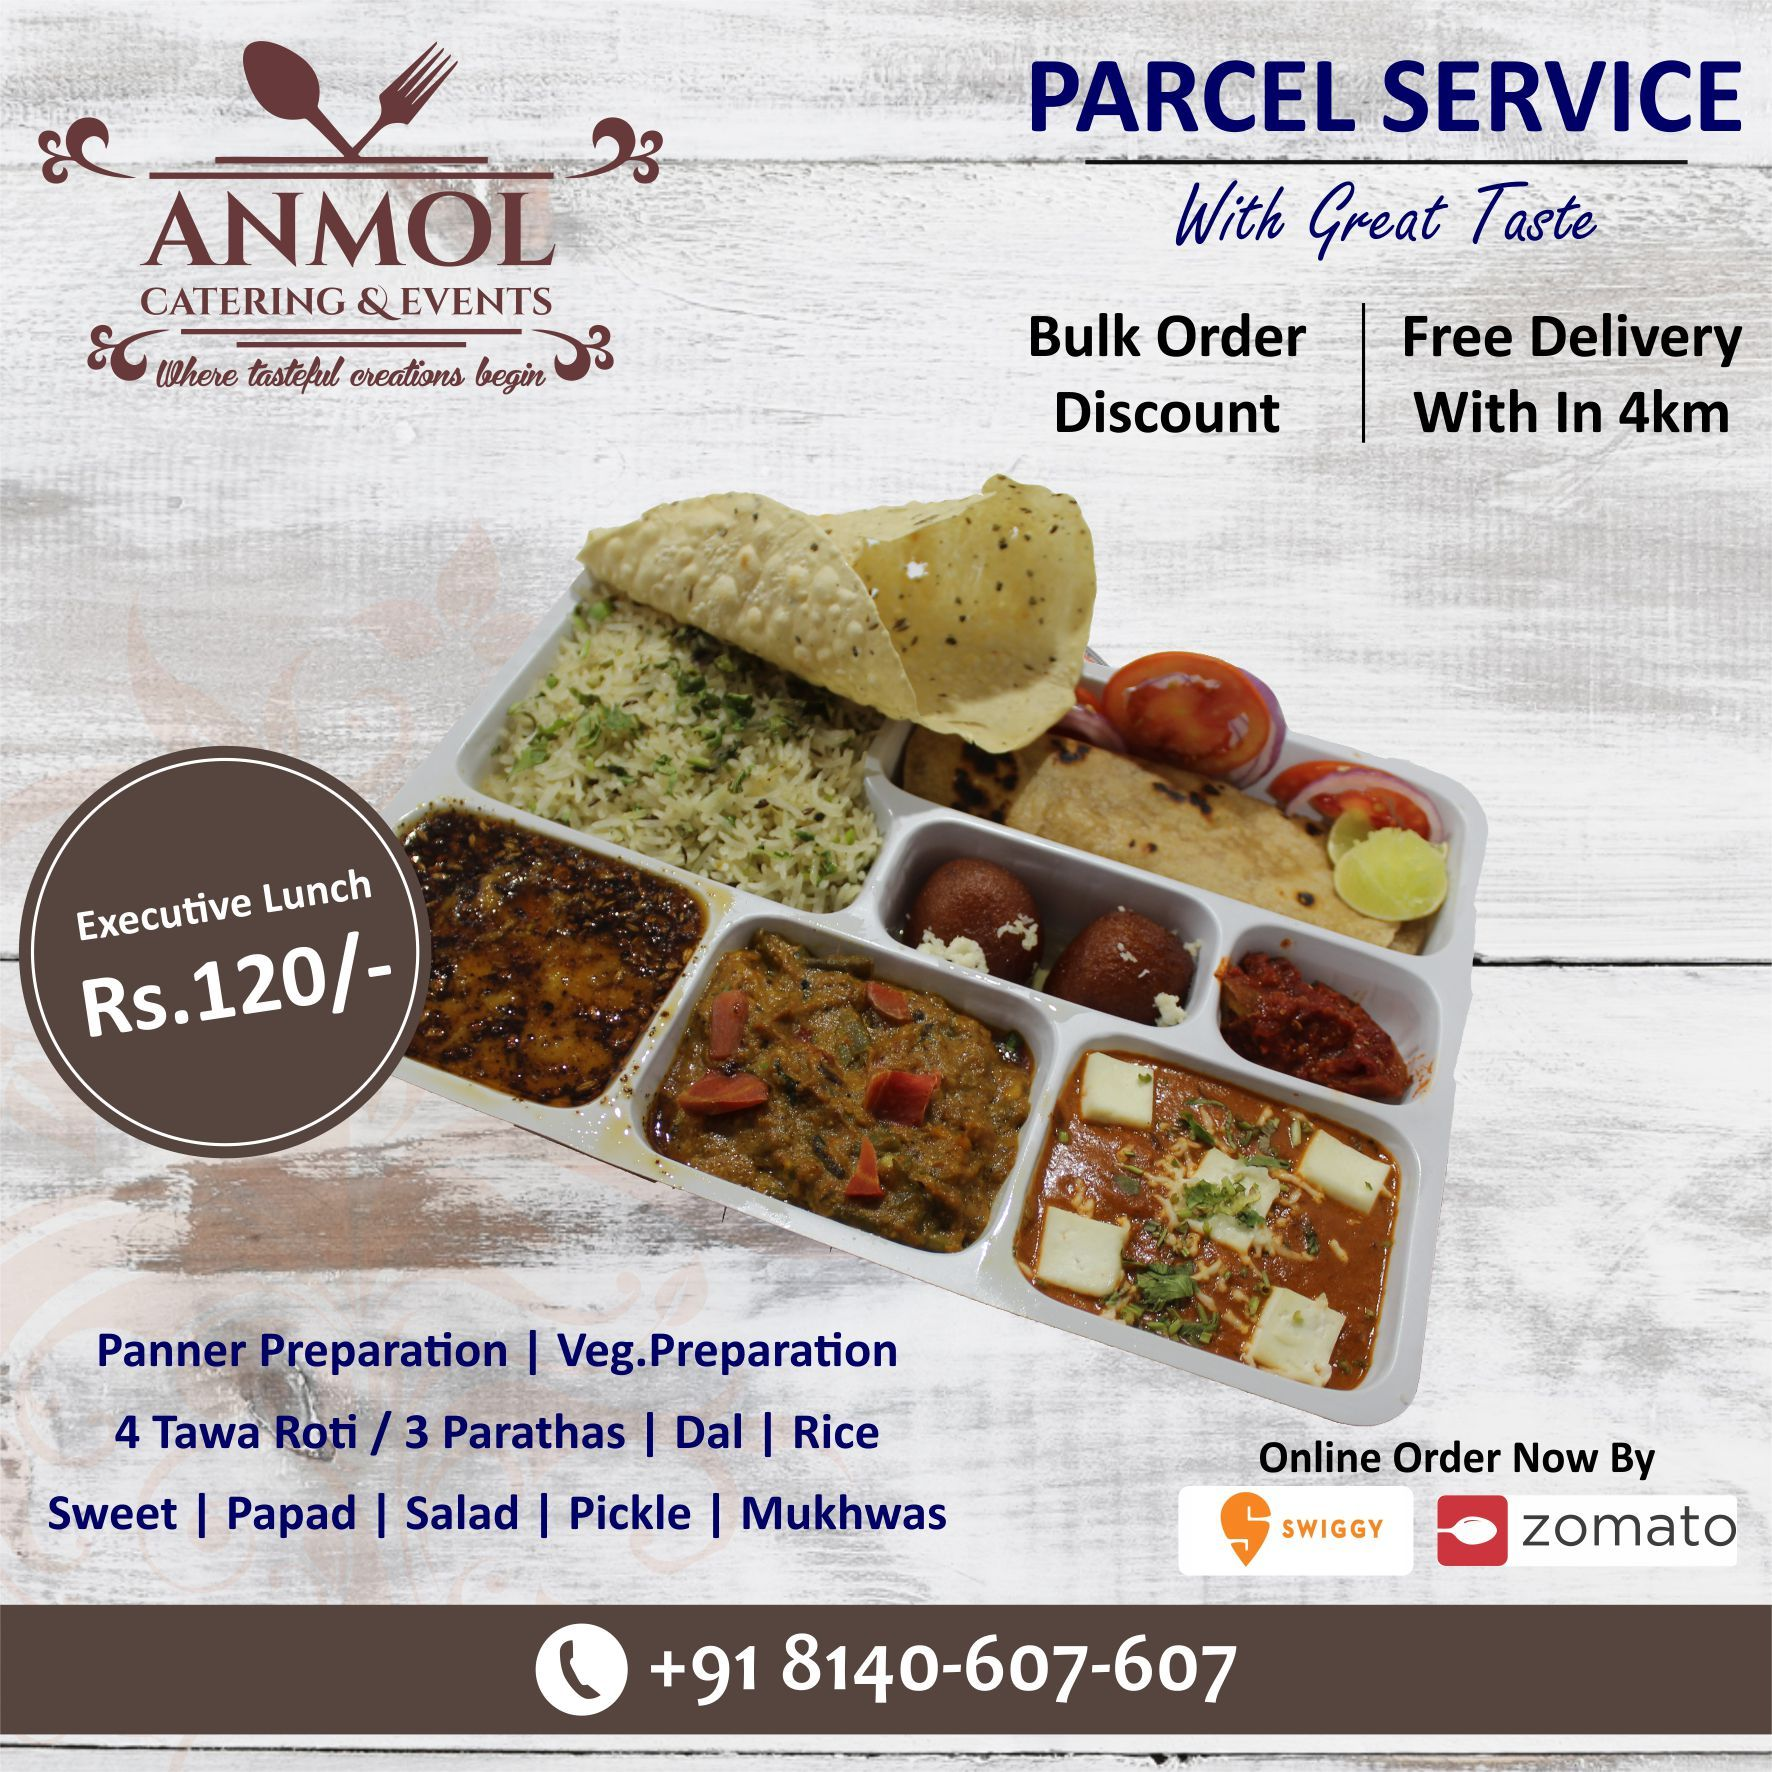 Parcel Service With Great Taste Executive Lunch Pack Rs 120 Anmolvadodara Order Now 91 8140607607 Also Availabe On Food Event Catering Catering